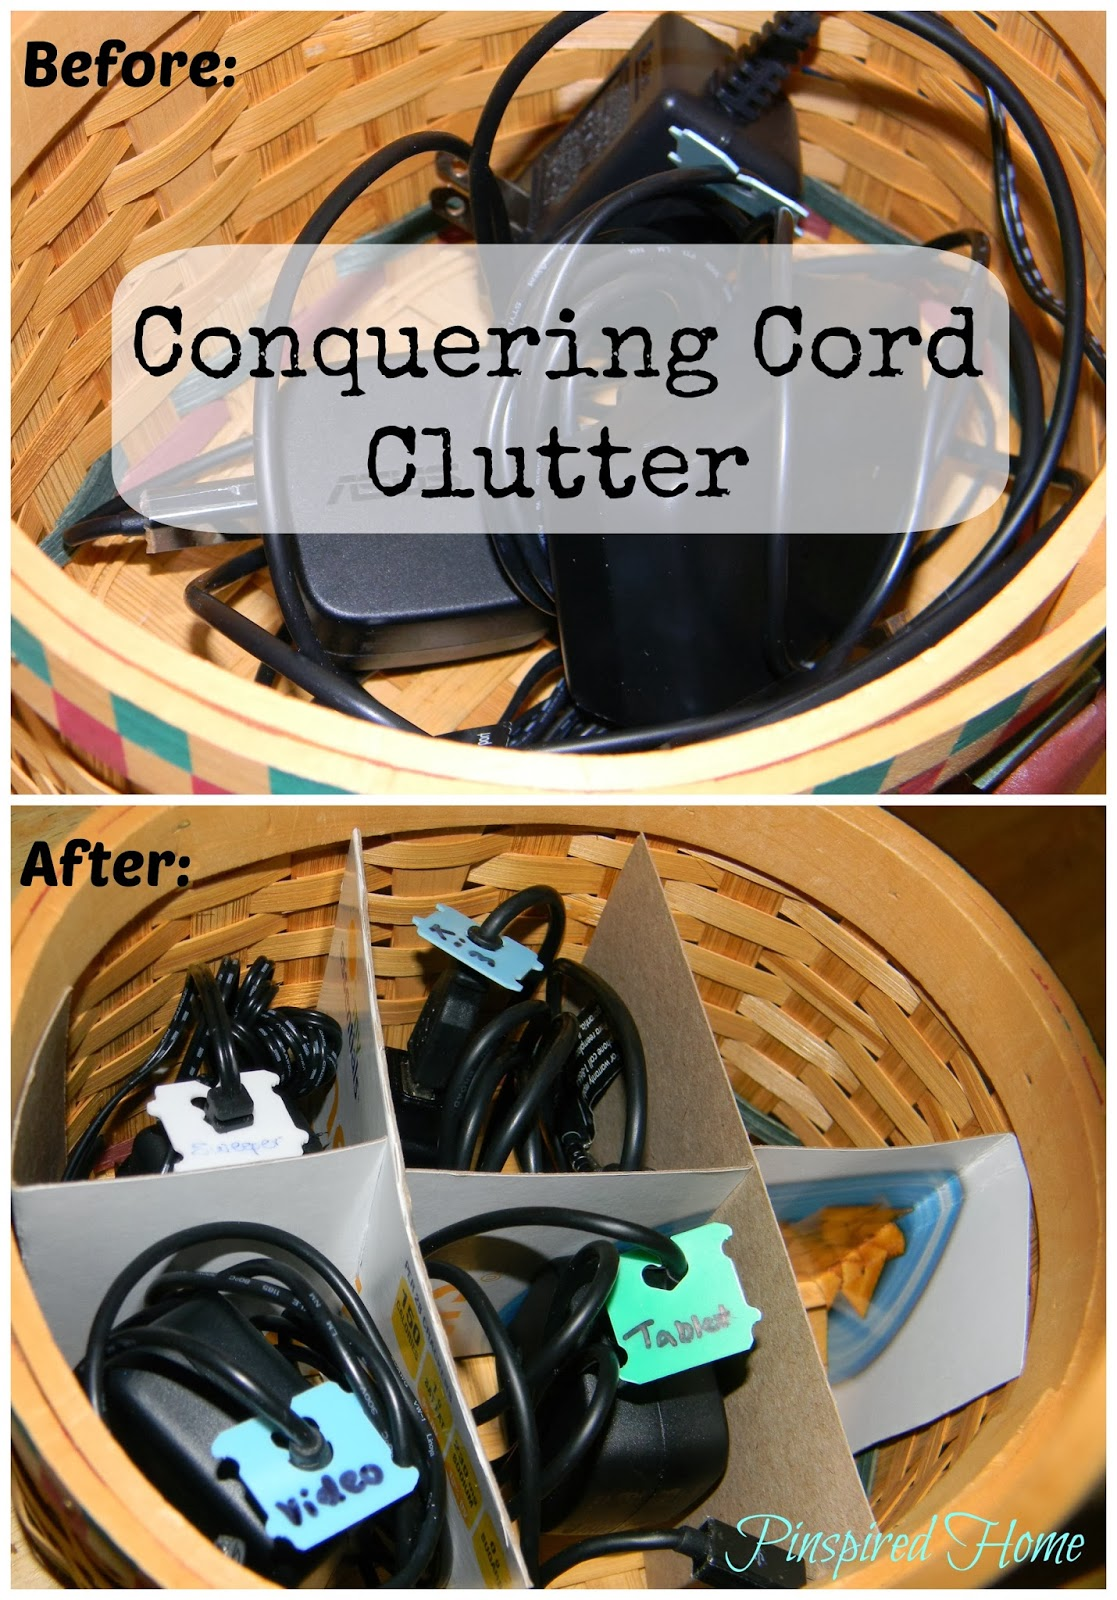 http://pinspiredhome.blogspot.com/2013/10/containing-cord-clutter.html